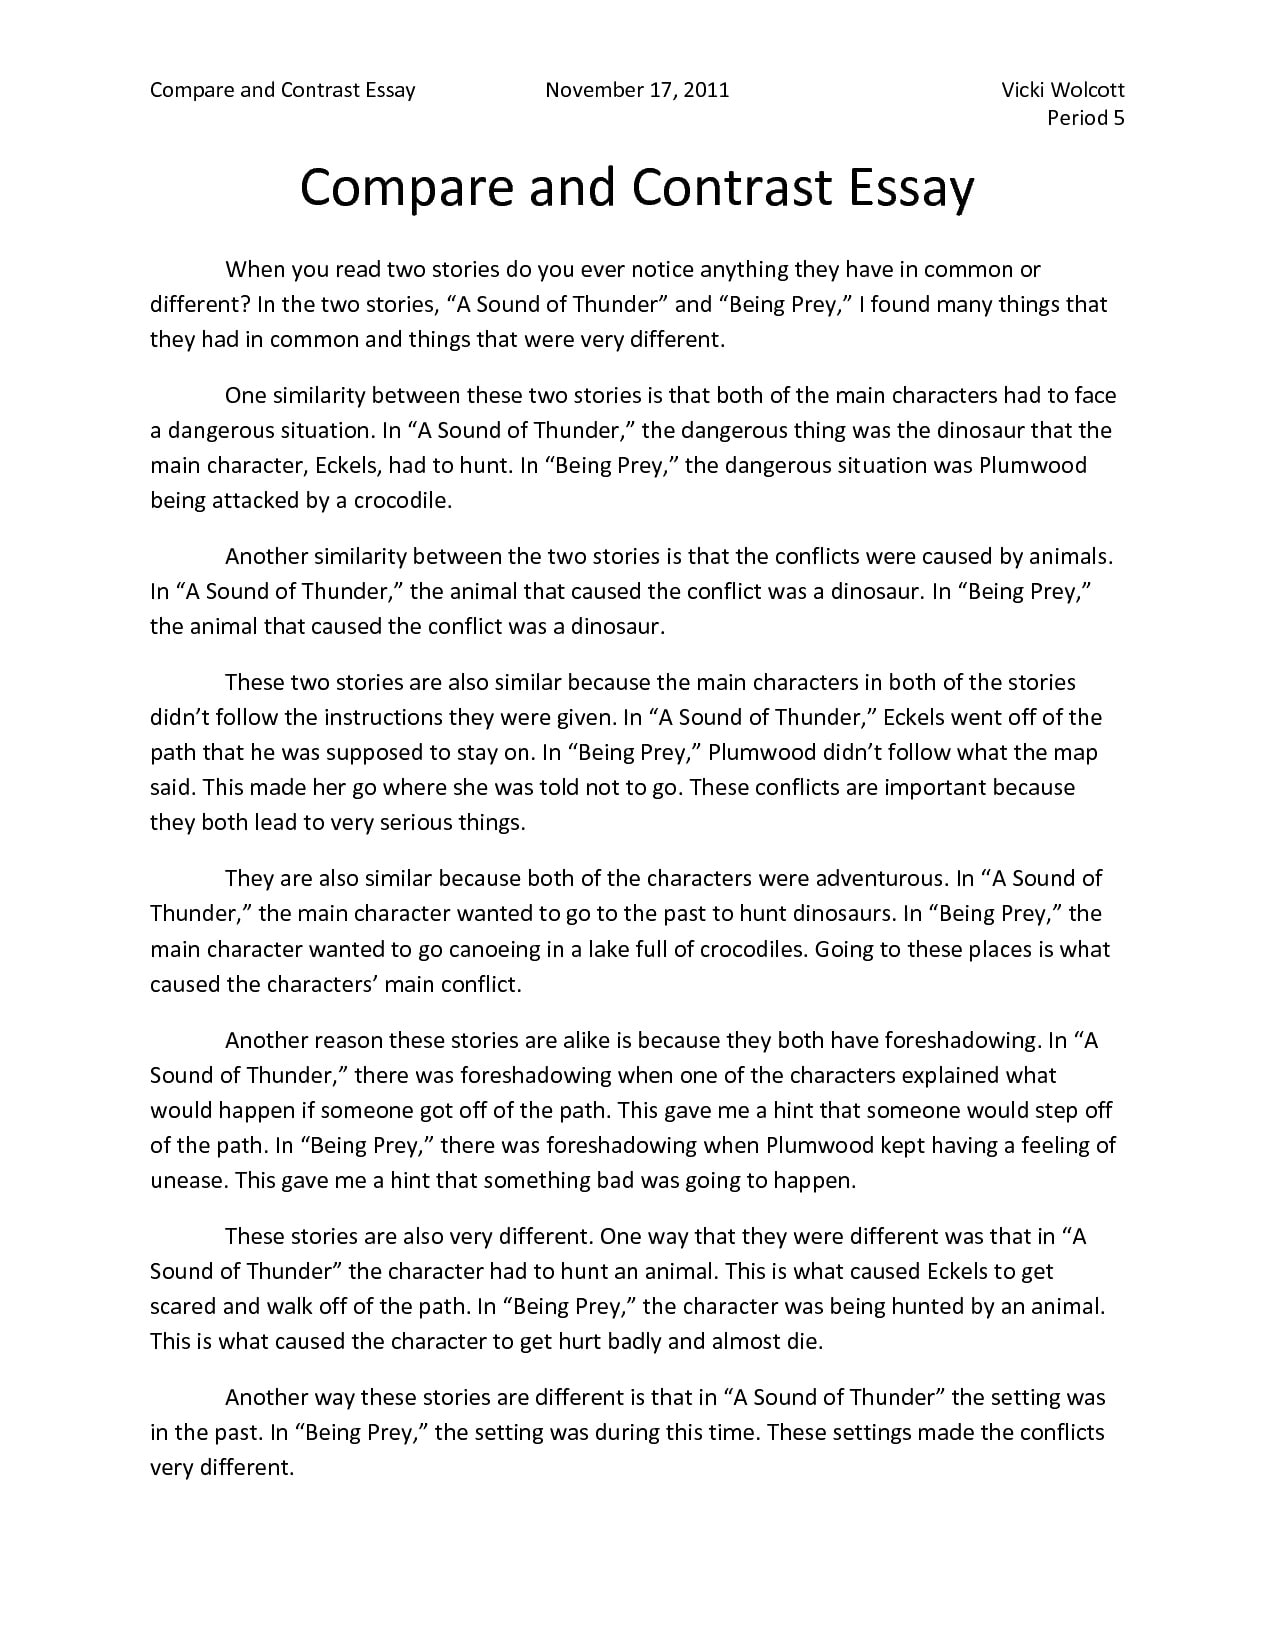 compare and contrast essay formats point by point different essay formats - Essay Formats